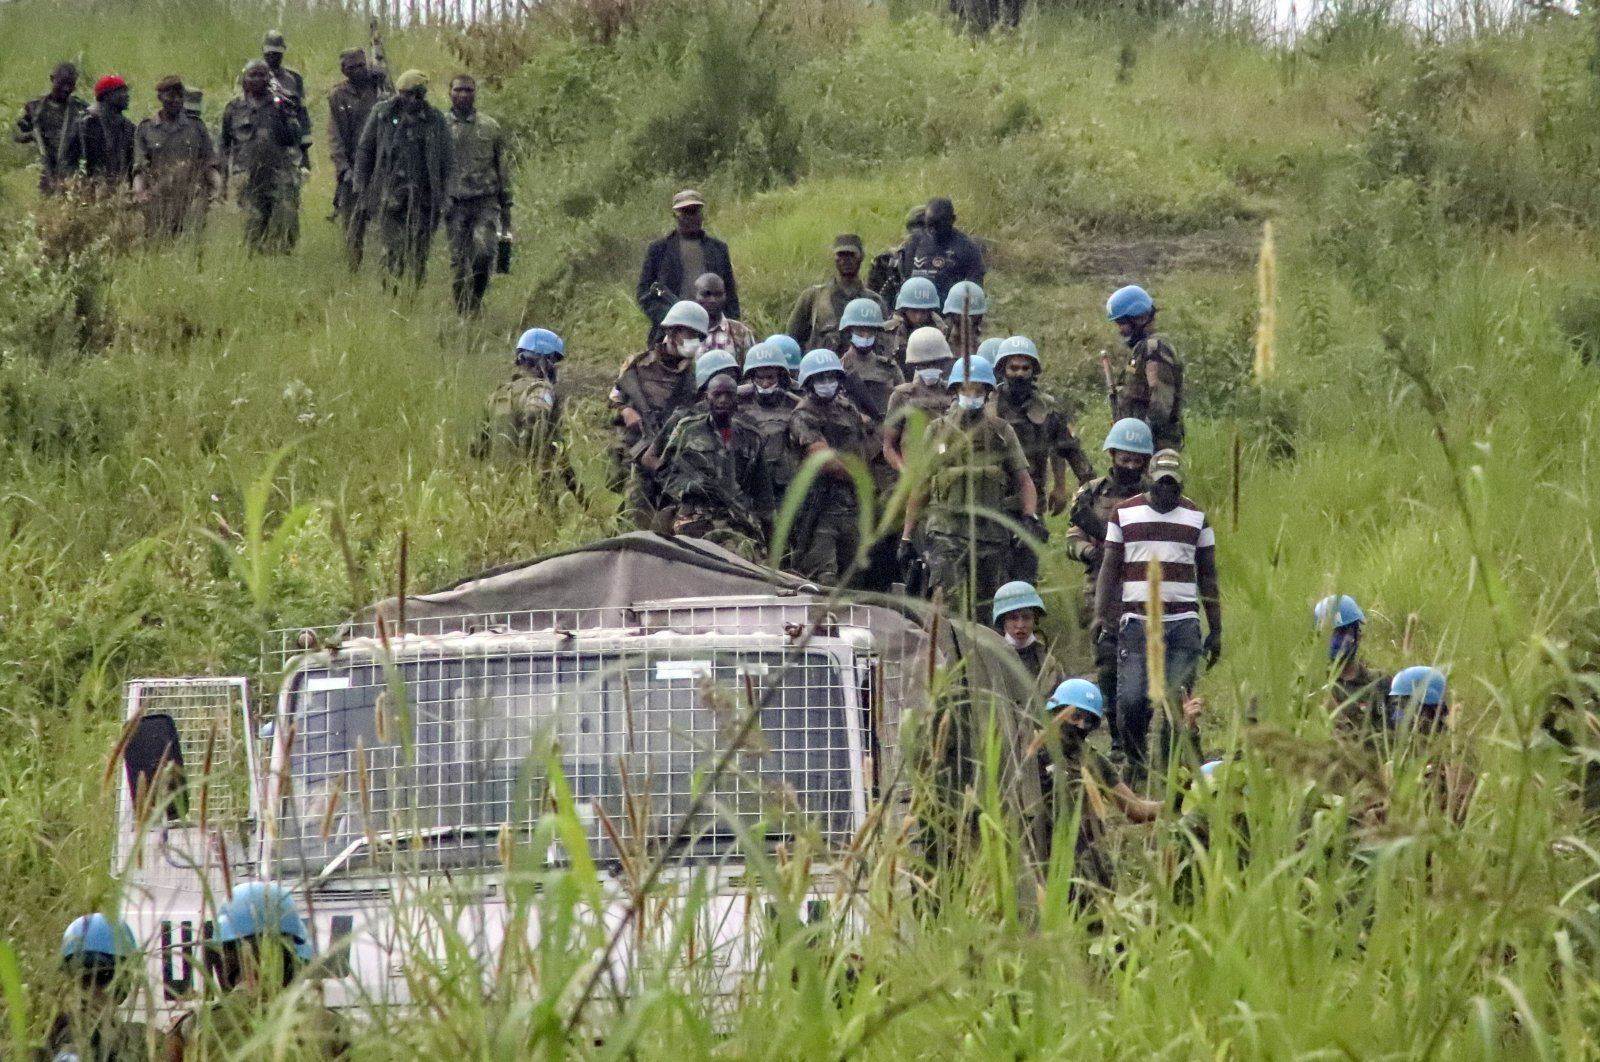 United Nations peacekeepers remove bodies from an area near where a U.N. convoy was attacked and the Italian ambassador to Congo killed, in Nyiragongo, North Kivu province, Congo, Monday, Feb. 22, 2021. (AP Photo)